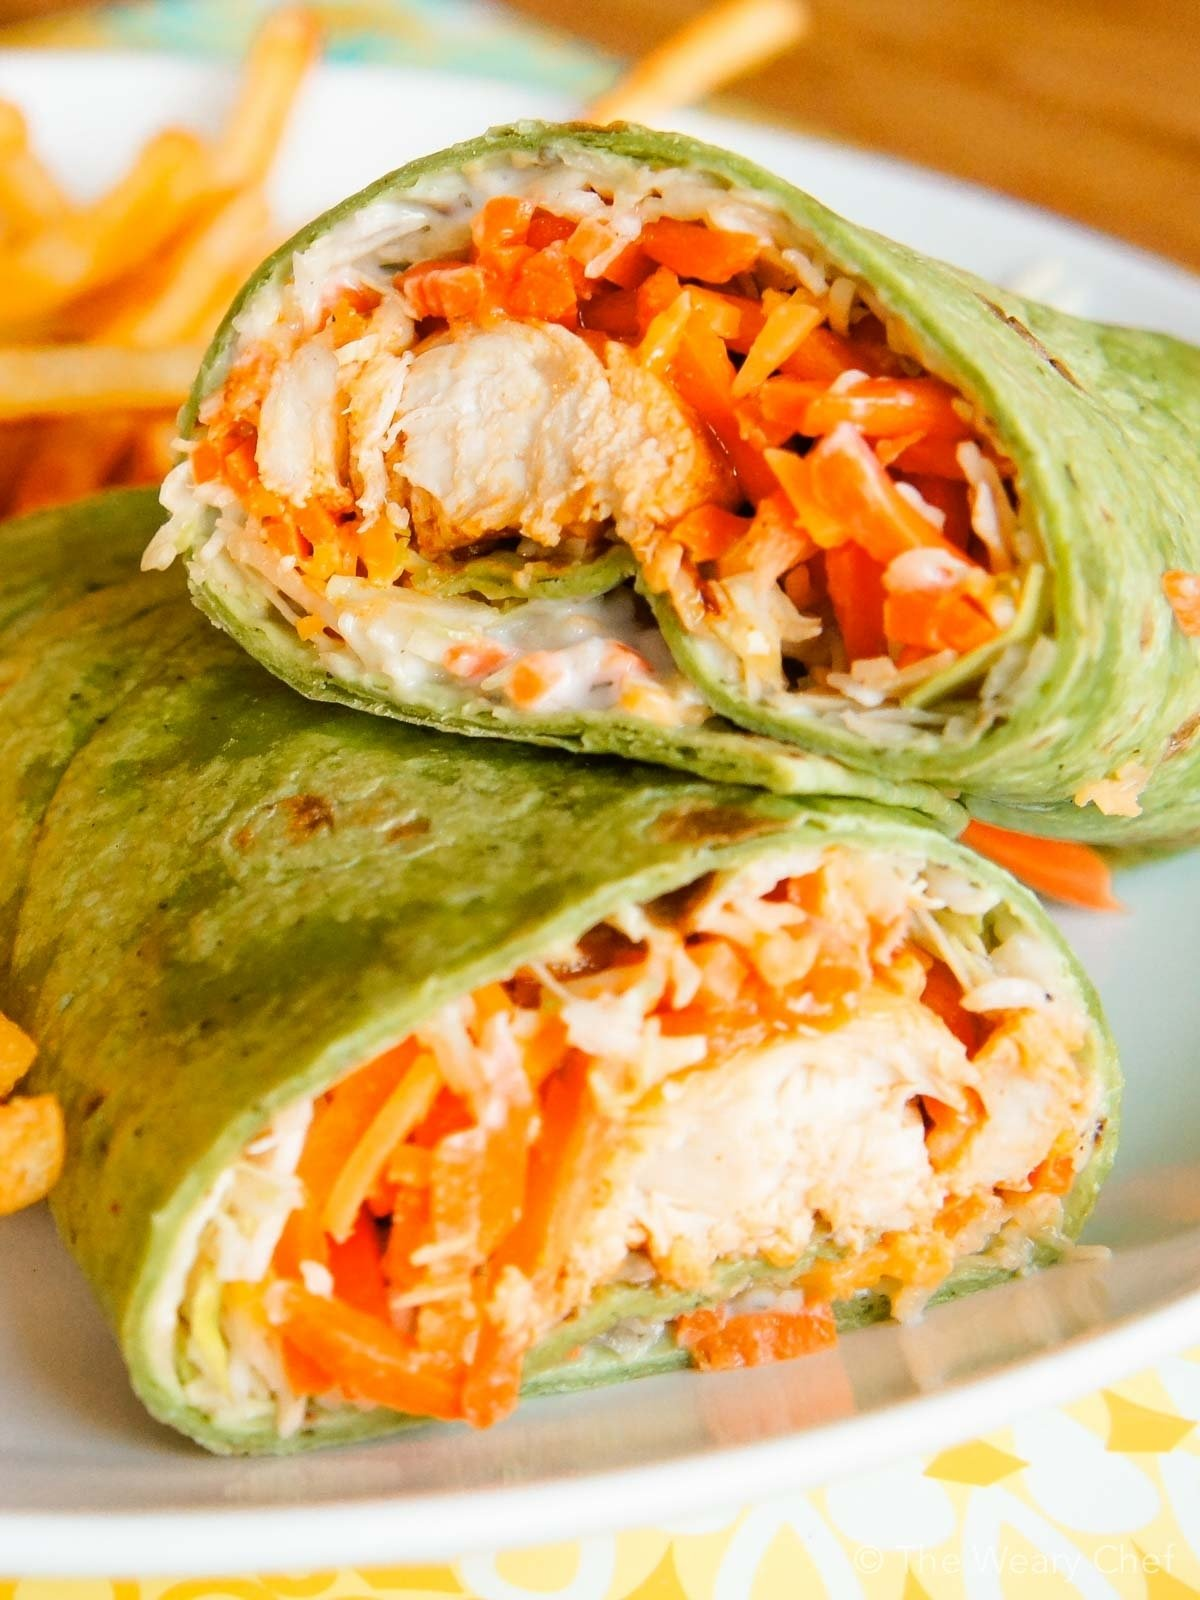 10 Ideal Easy Dinner Ideas For 2 buffalo chicken wraps a fun and tasty dinner idea the weary chef 10 2021